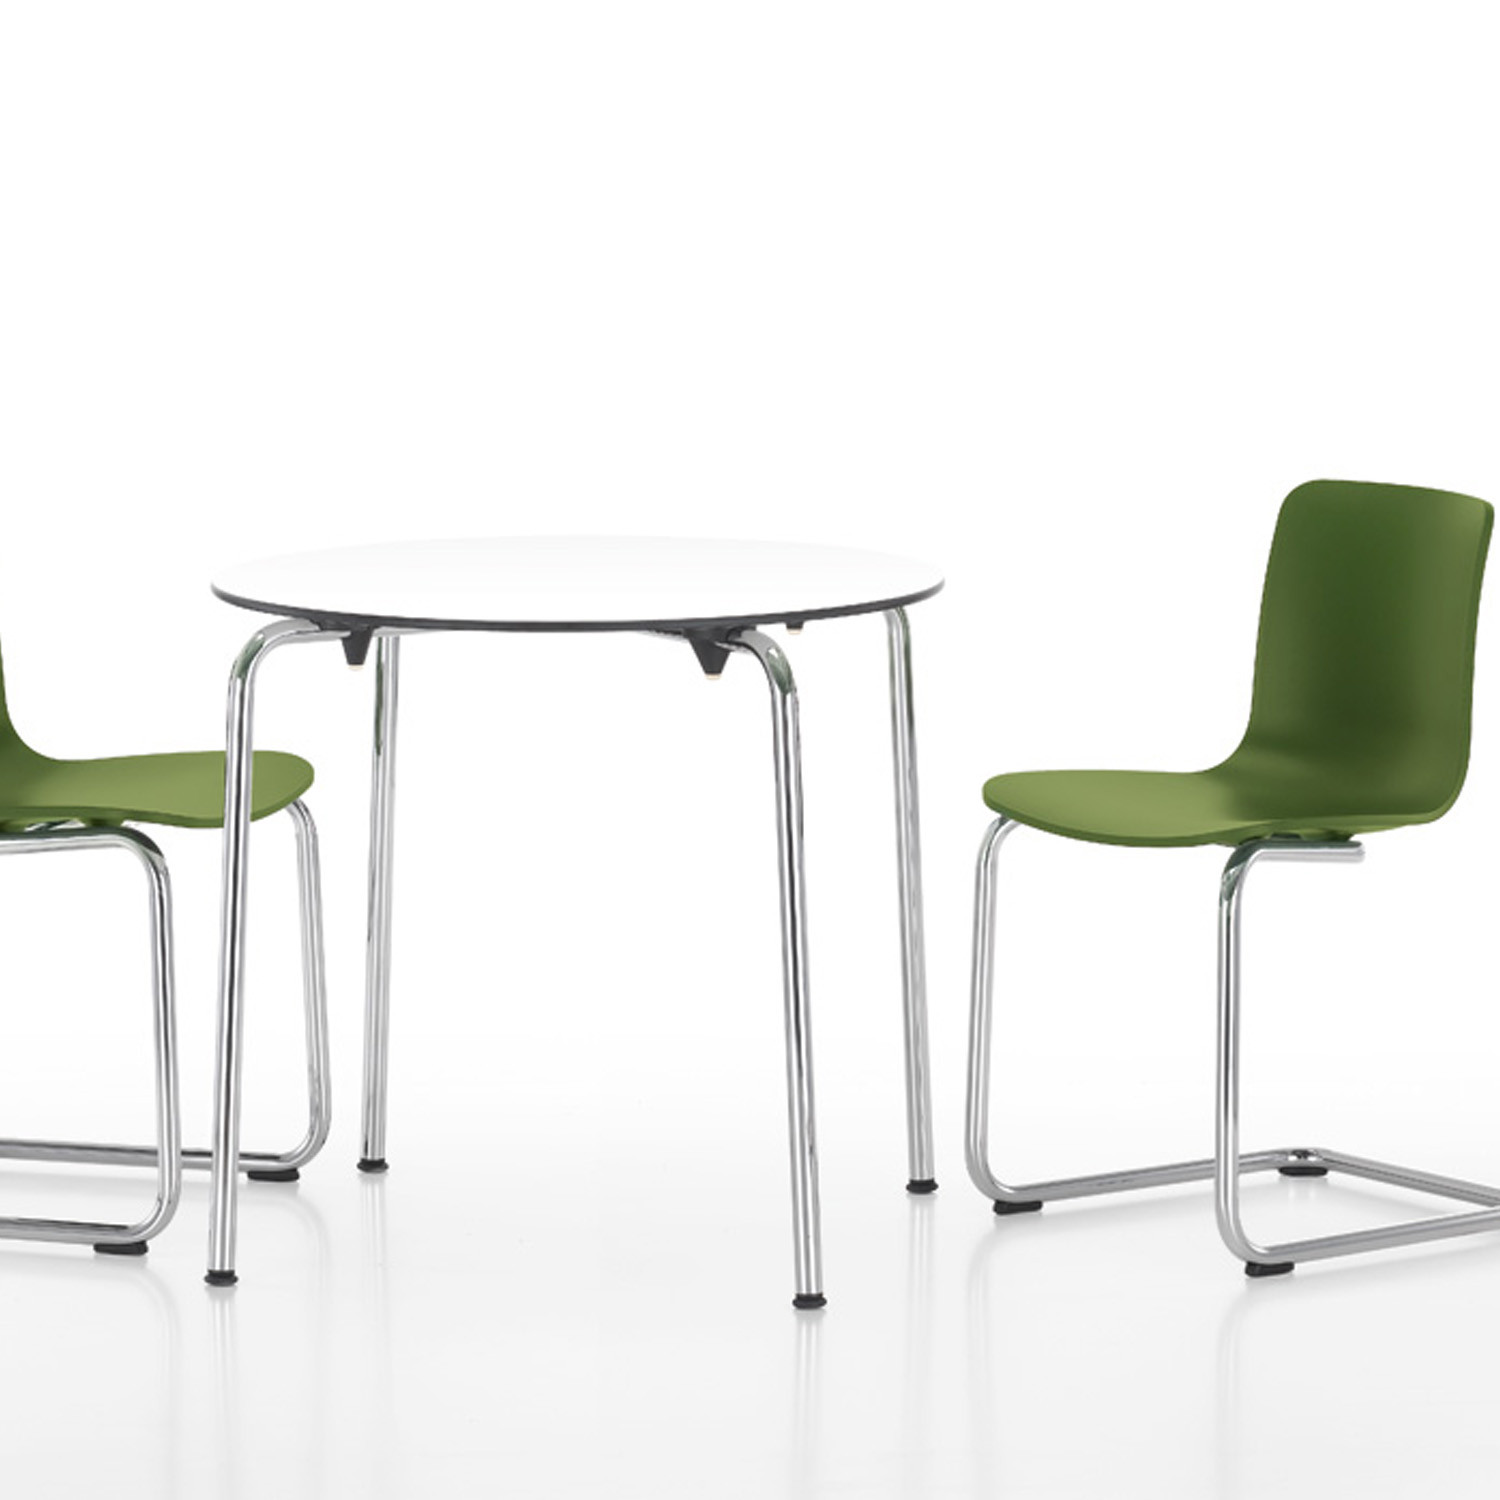 Circular HAL table and chairs